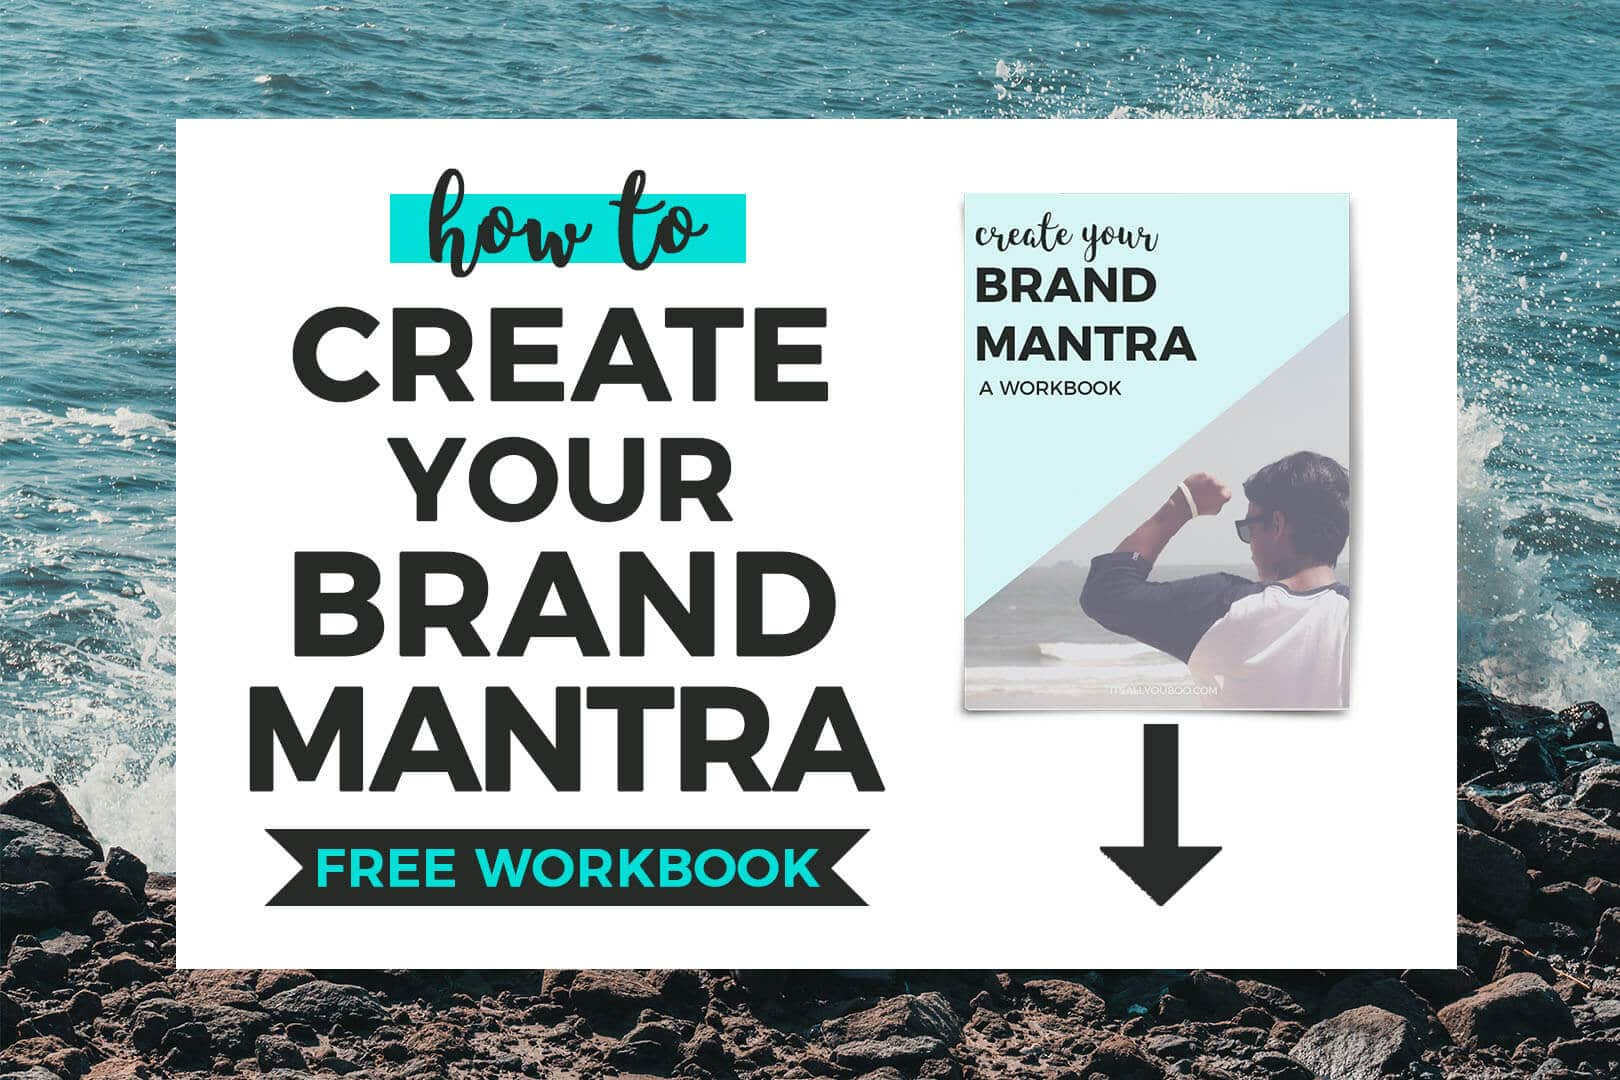 How to Create Your Brand Mantra FREE WORKBOOK with preview image of free download